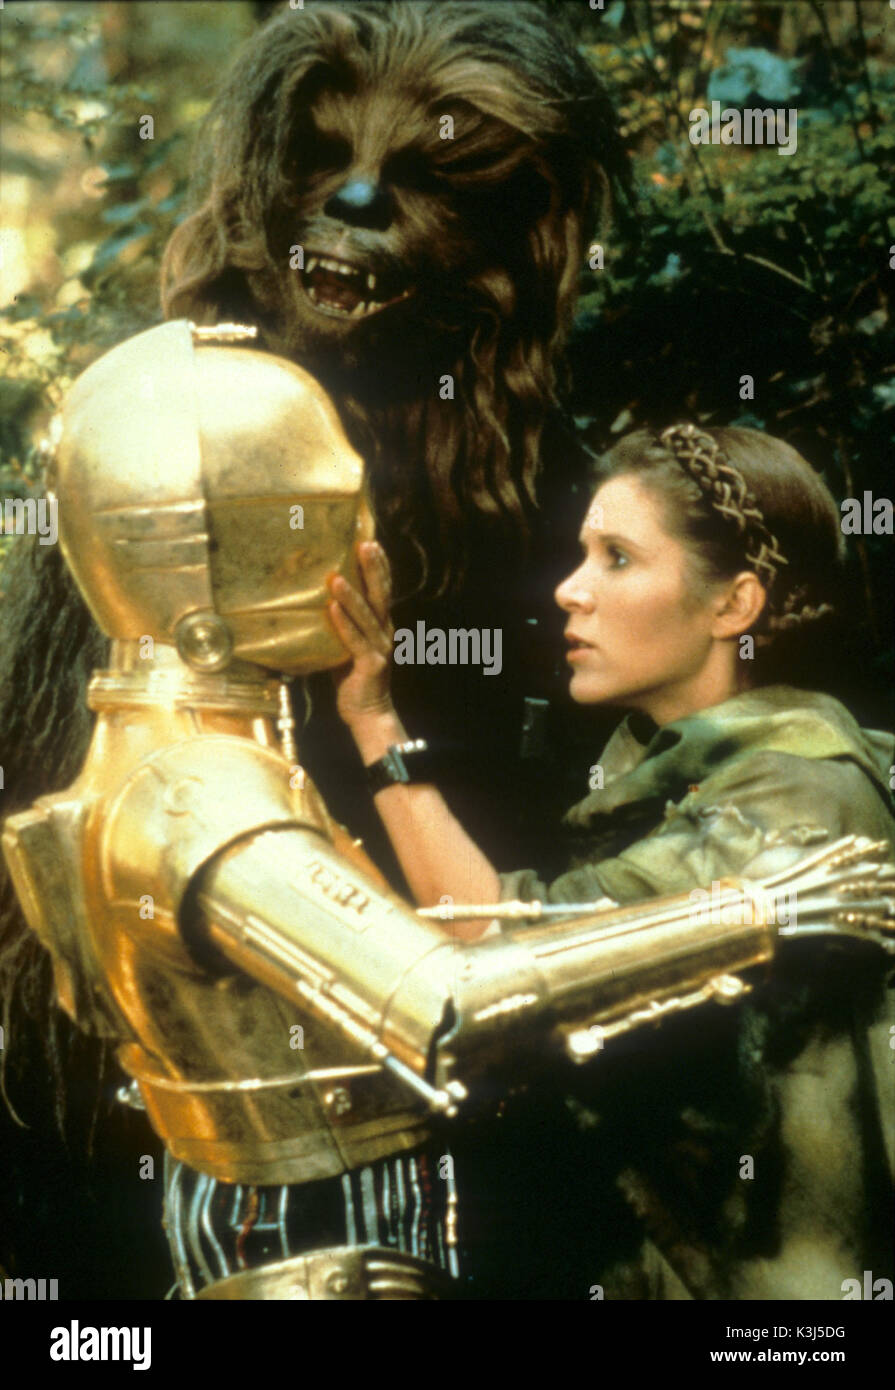 STAR WARS: EPISODE VI - RETURN OF THE JEDI STAR WARS: EPISODE VI - RETURN OF THE JEDI ANTHONY DANIELS as C-3PO, PETER MAYHEW as Chewbacca, CARRIE FISHER as Princess Leia - Stock Image